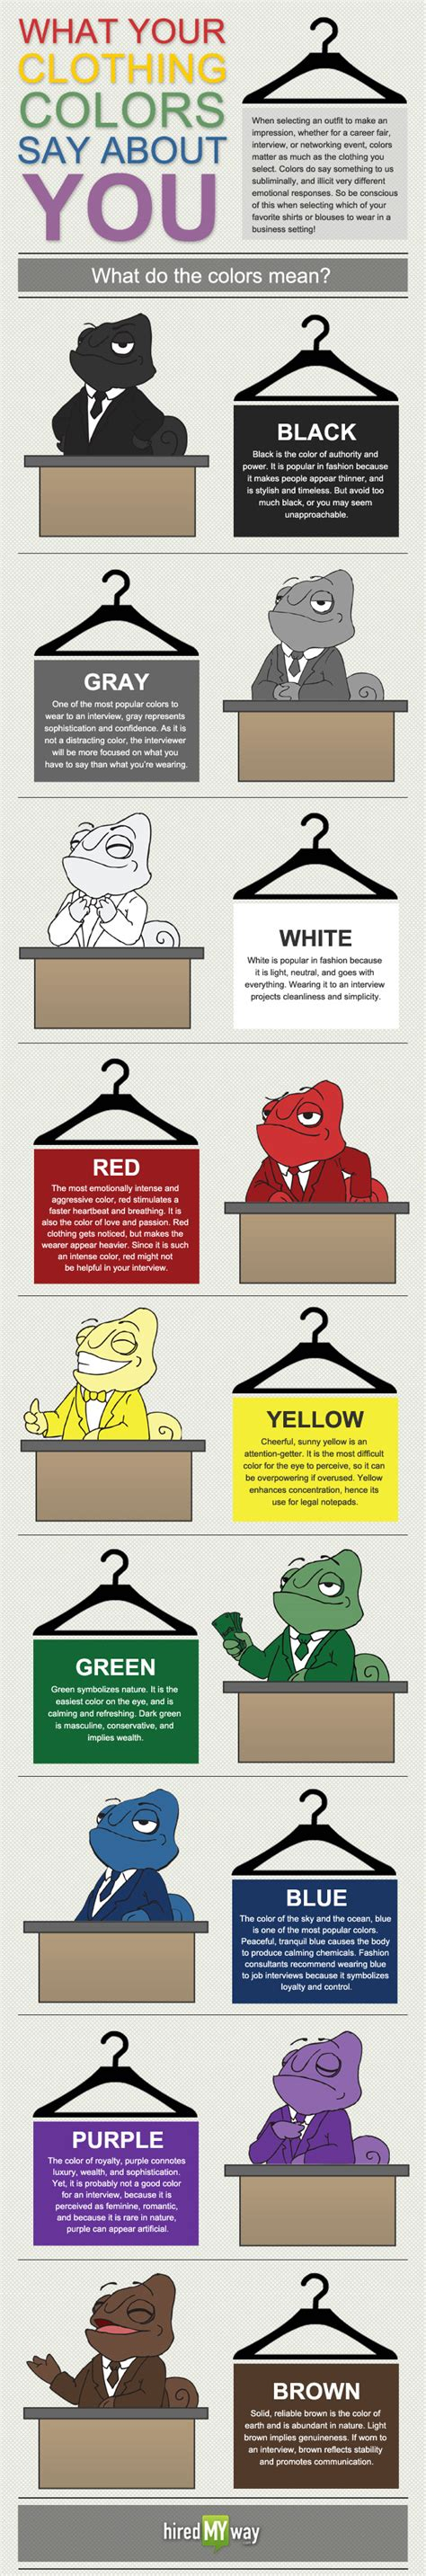 what colors mean what your clothing color says about you dressed to a t